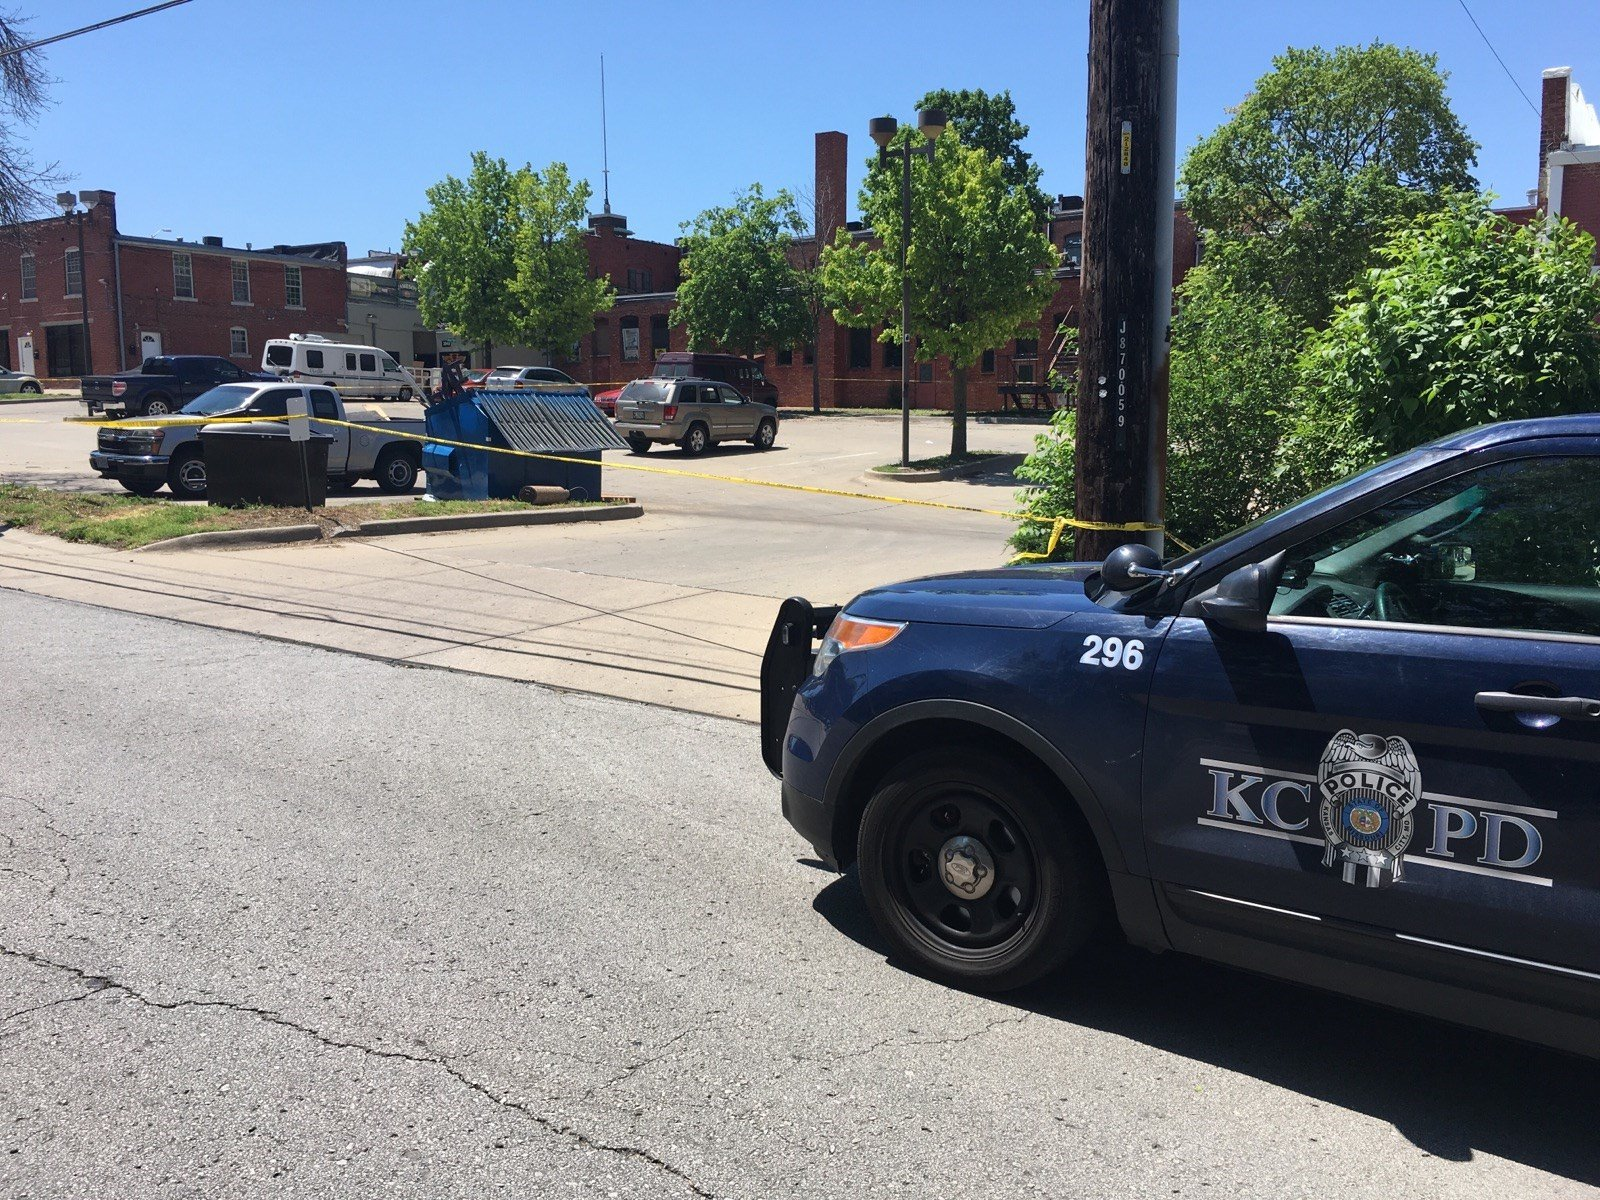 Police say the man was hit by a vehicle while standing in the street. (KCTV5)